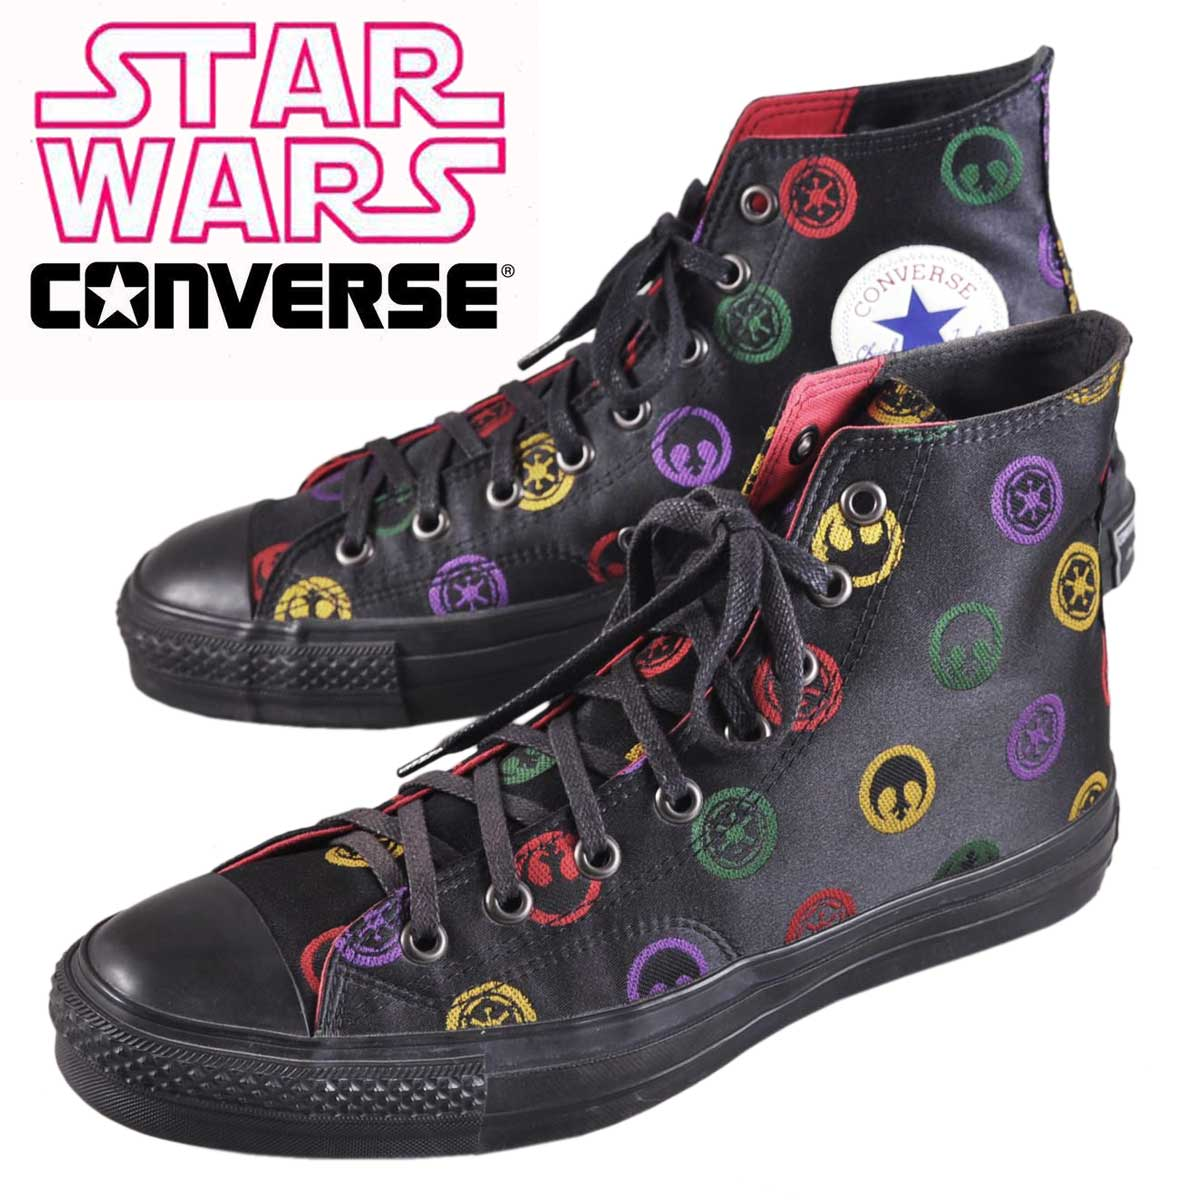 2005 made in Japan CONVERSE x STARWARS converse x Star Wars ALL STAR RETRO STAR WARS HI all star retro Star Wars HI Black logo pattern satin